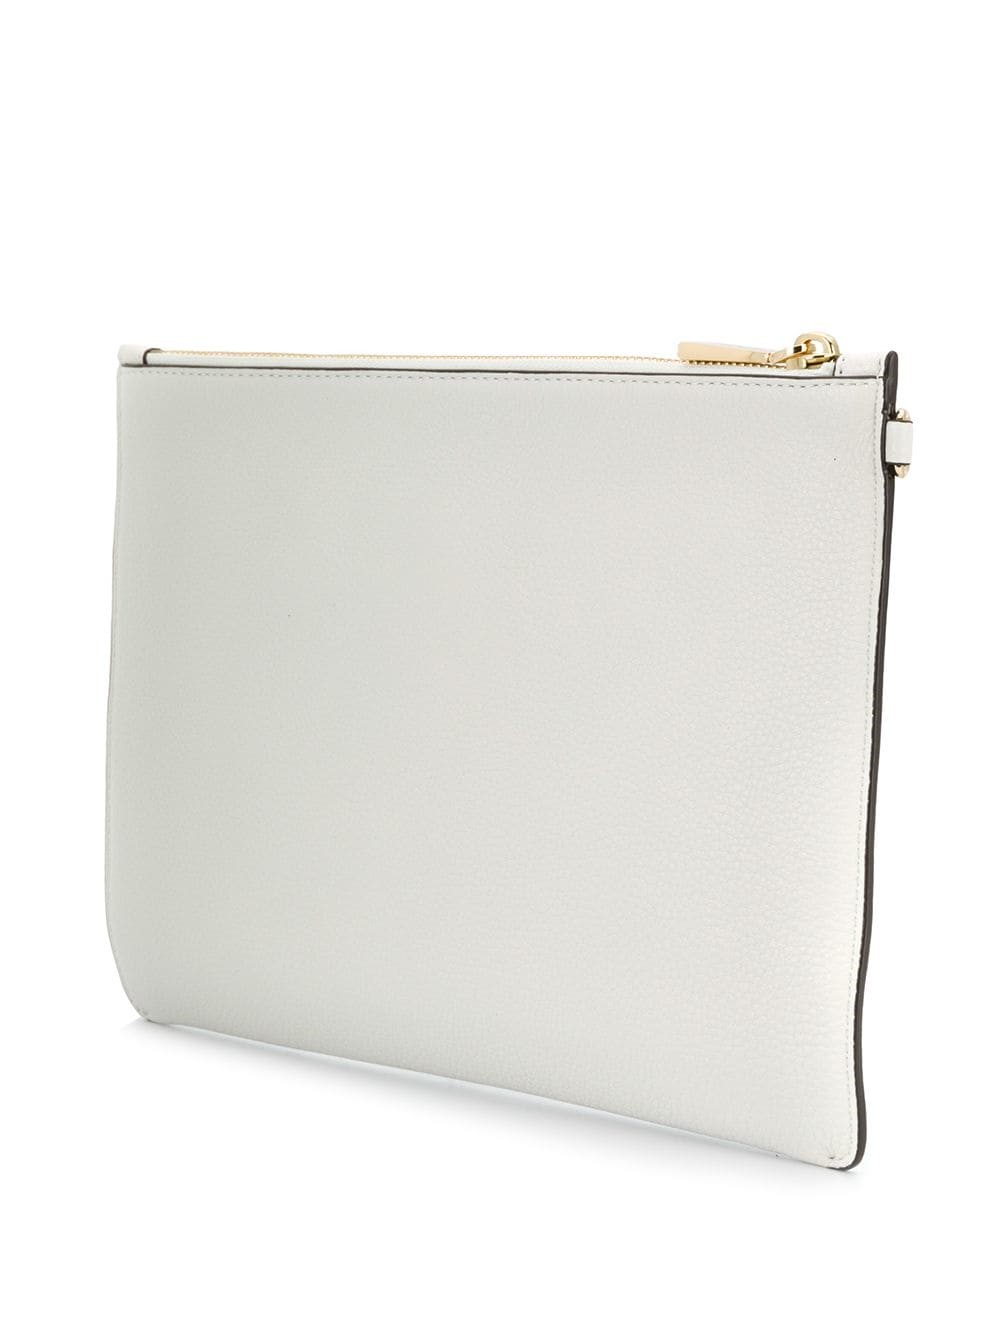 4f8fa6419950 michael kors mk ZIPPED WALLET available on montiboutique.com - 27584